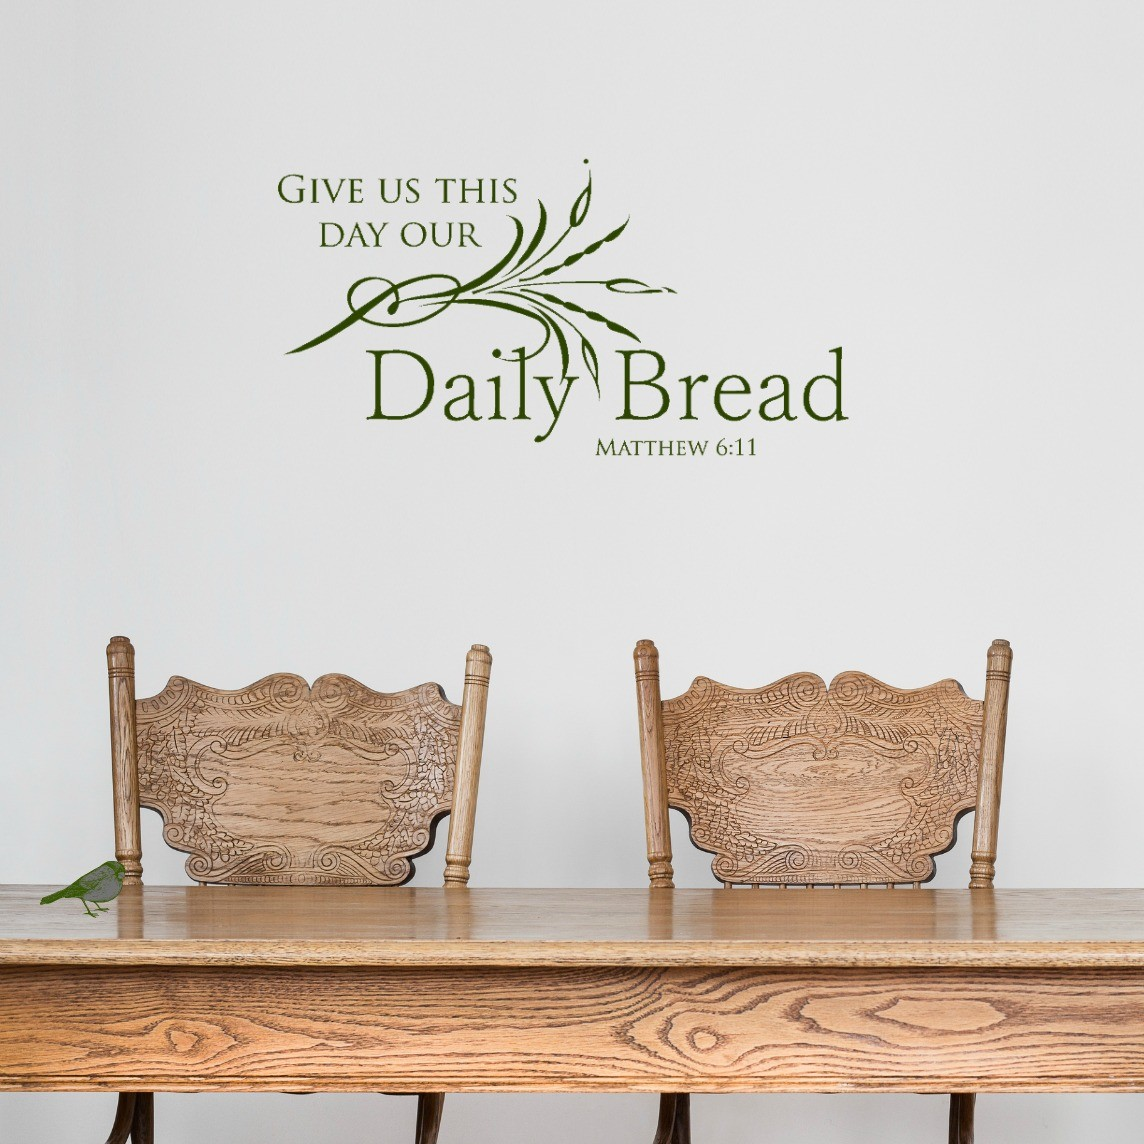 Our Daily Bread [wheat]